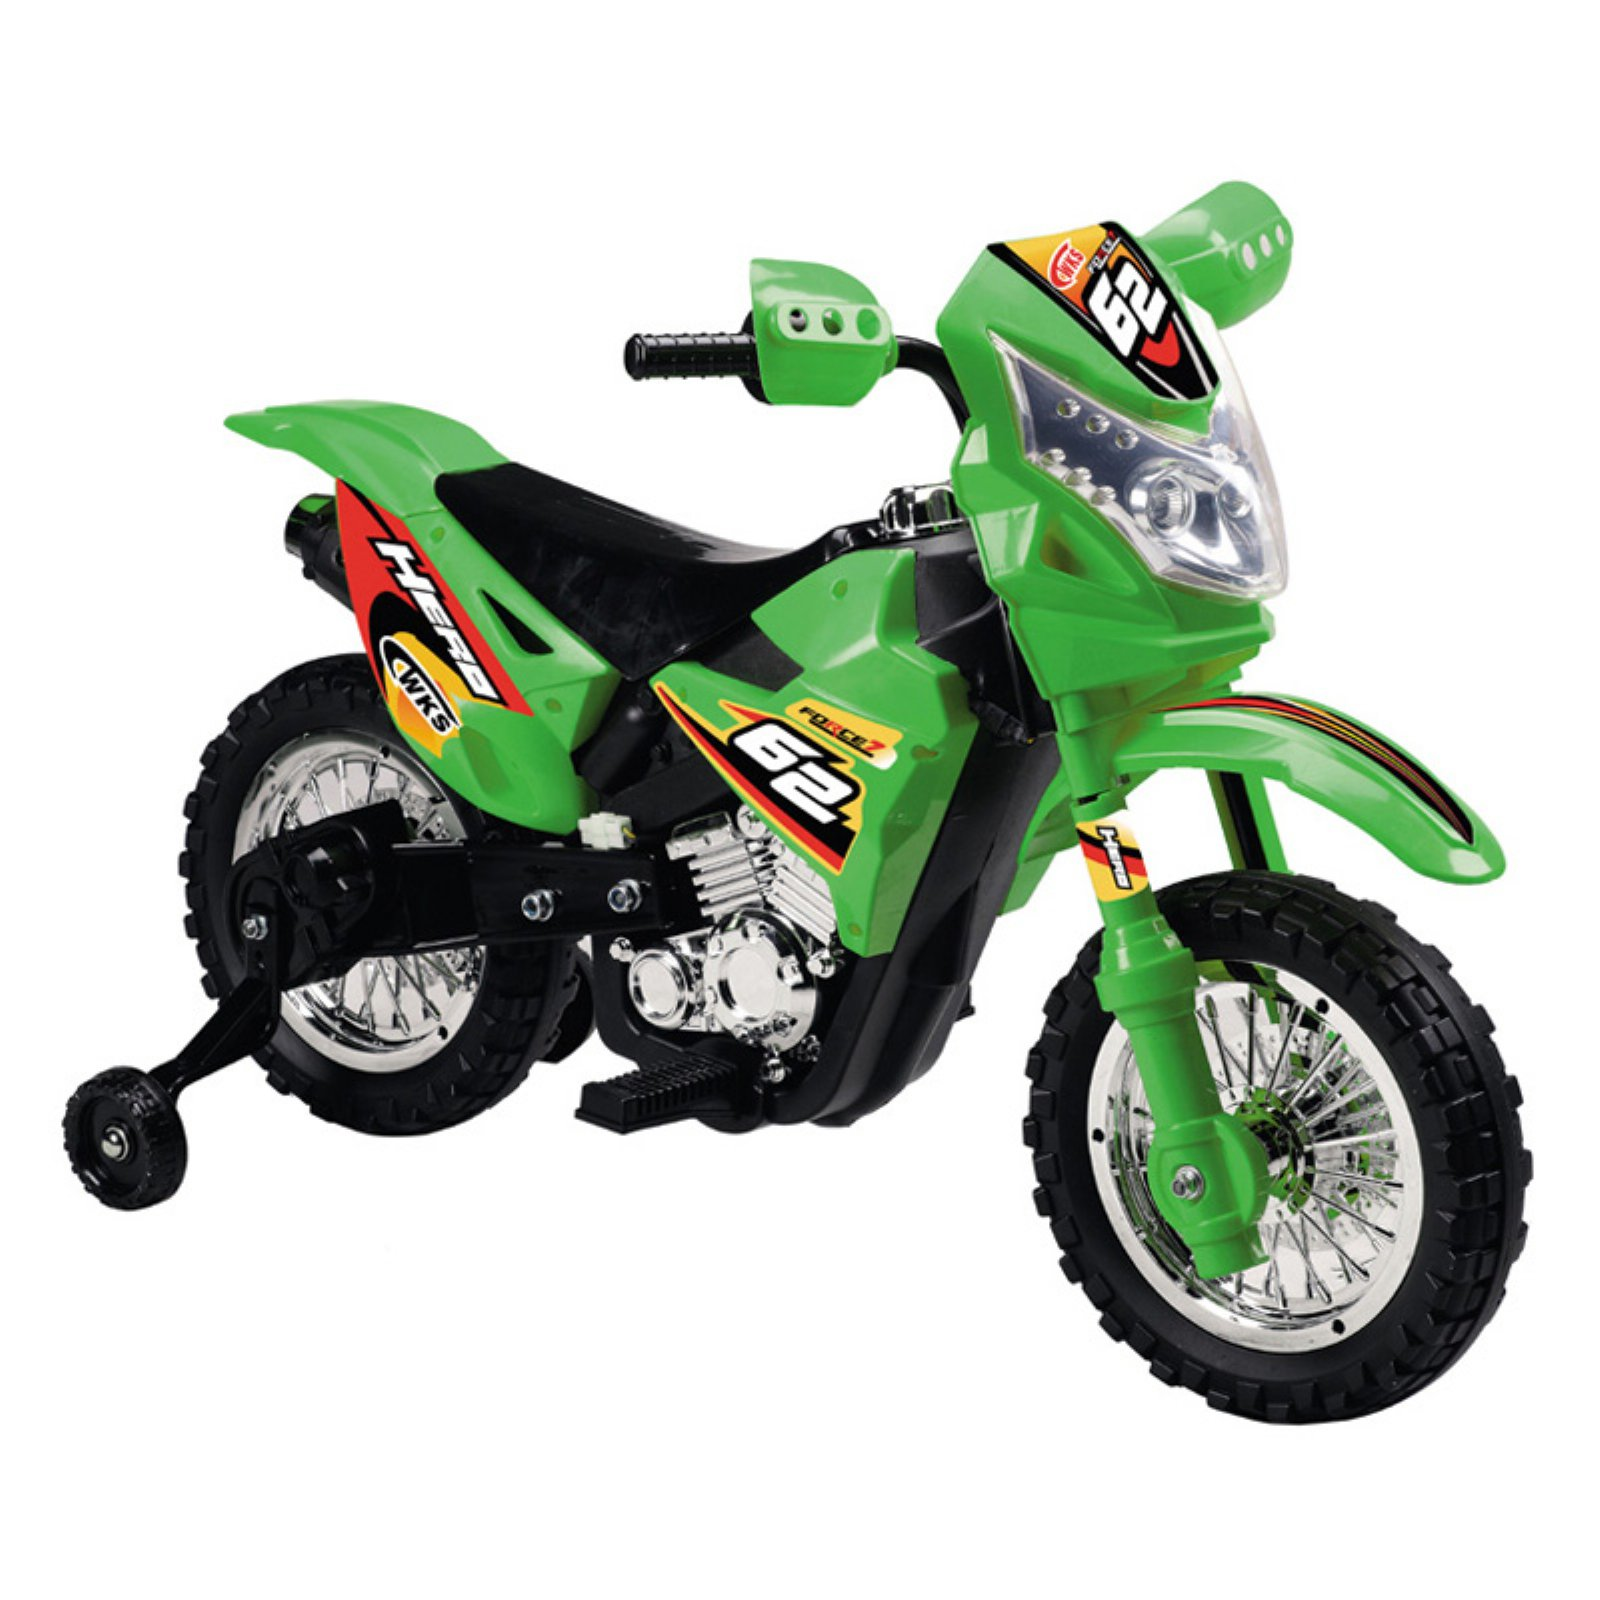 Vroom Rider Dirt Bike Motorcycle Battery Powered Riding Toy Orange by Overstock